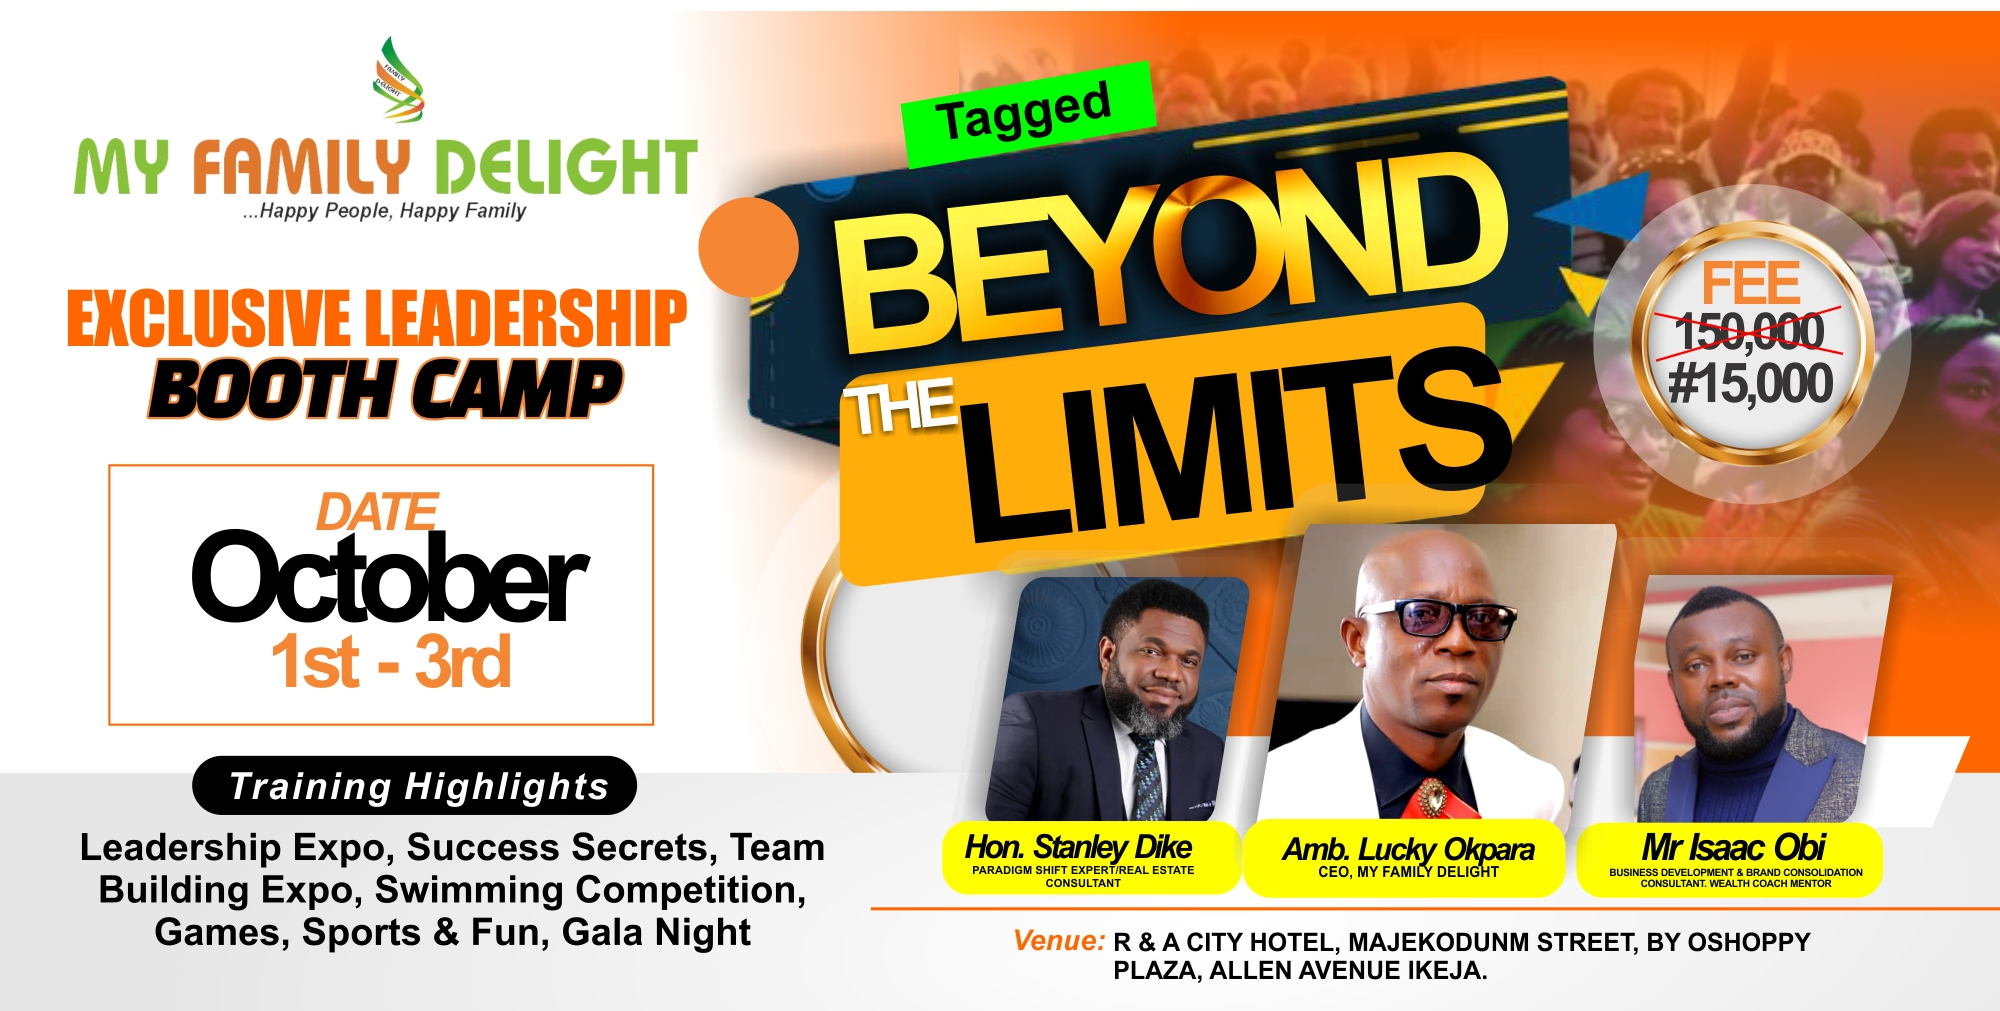 LEADERSHIP BOOTH CAMP Post free event in Nigeria using tickethub.ng, buy and sell tickets to event